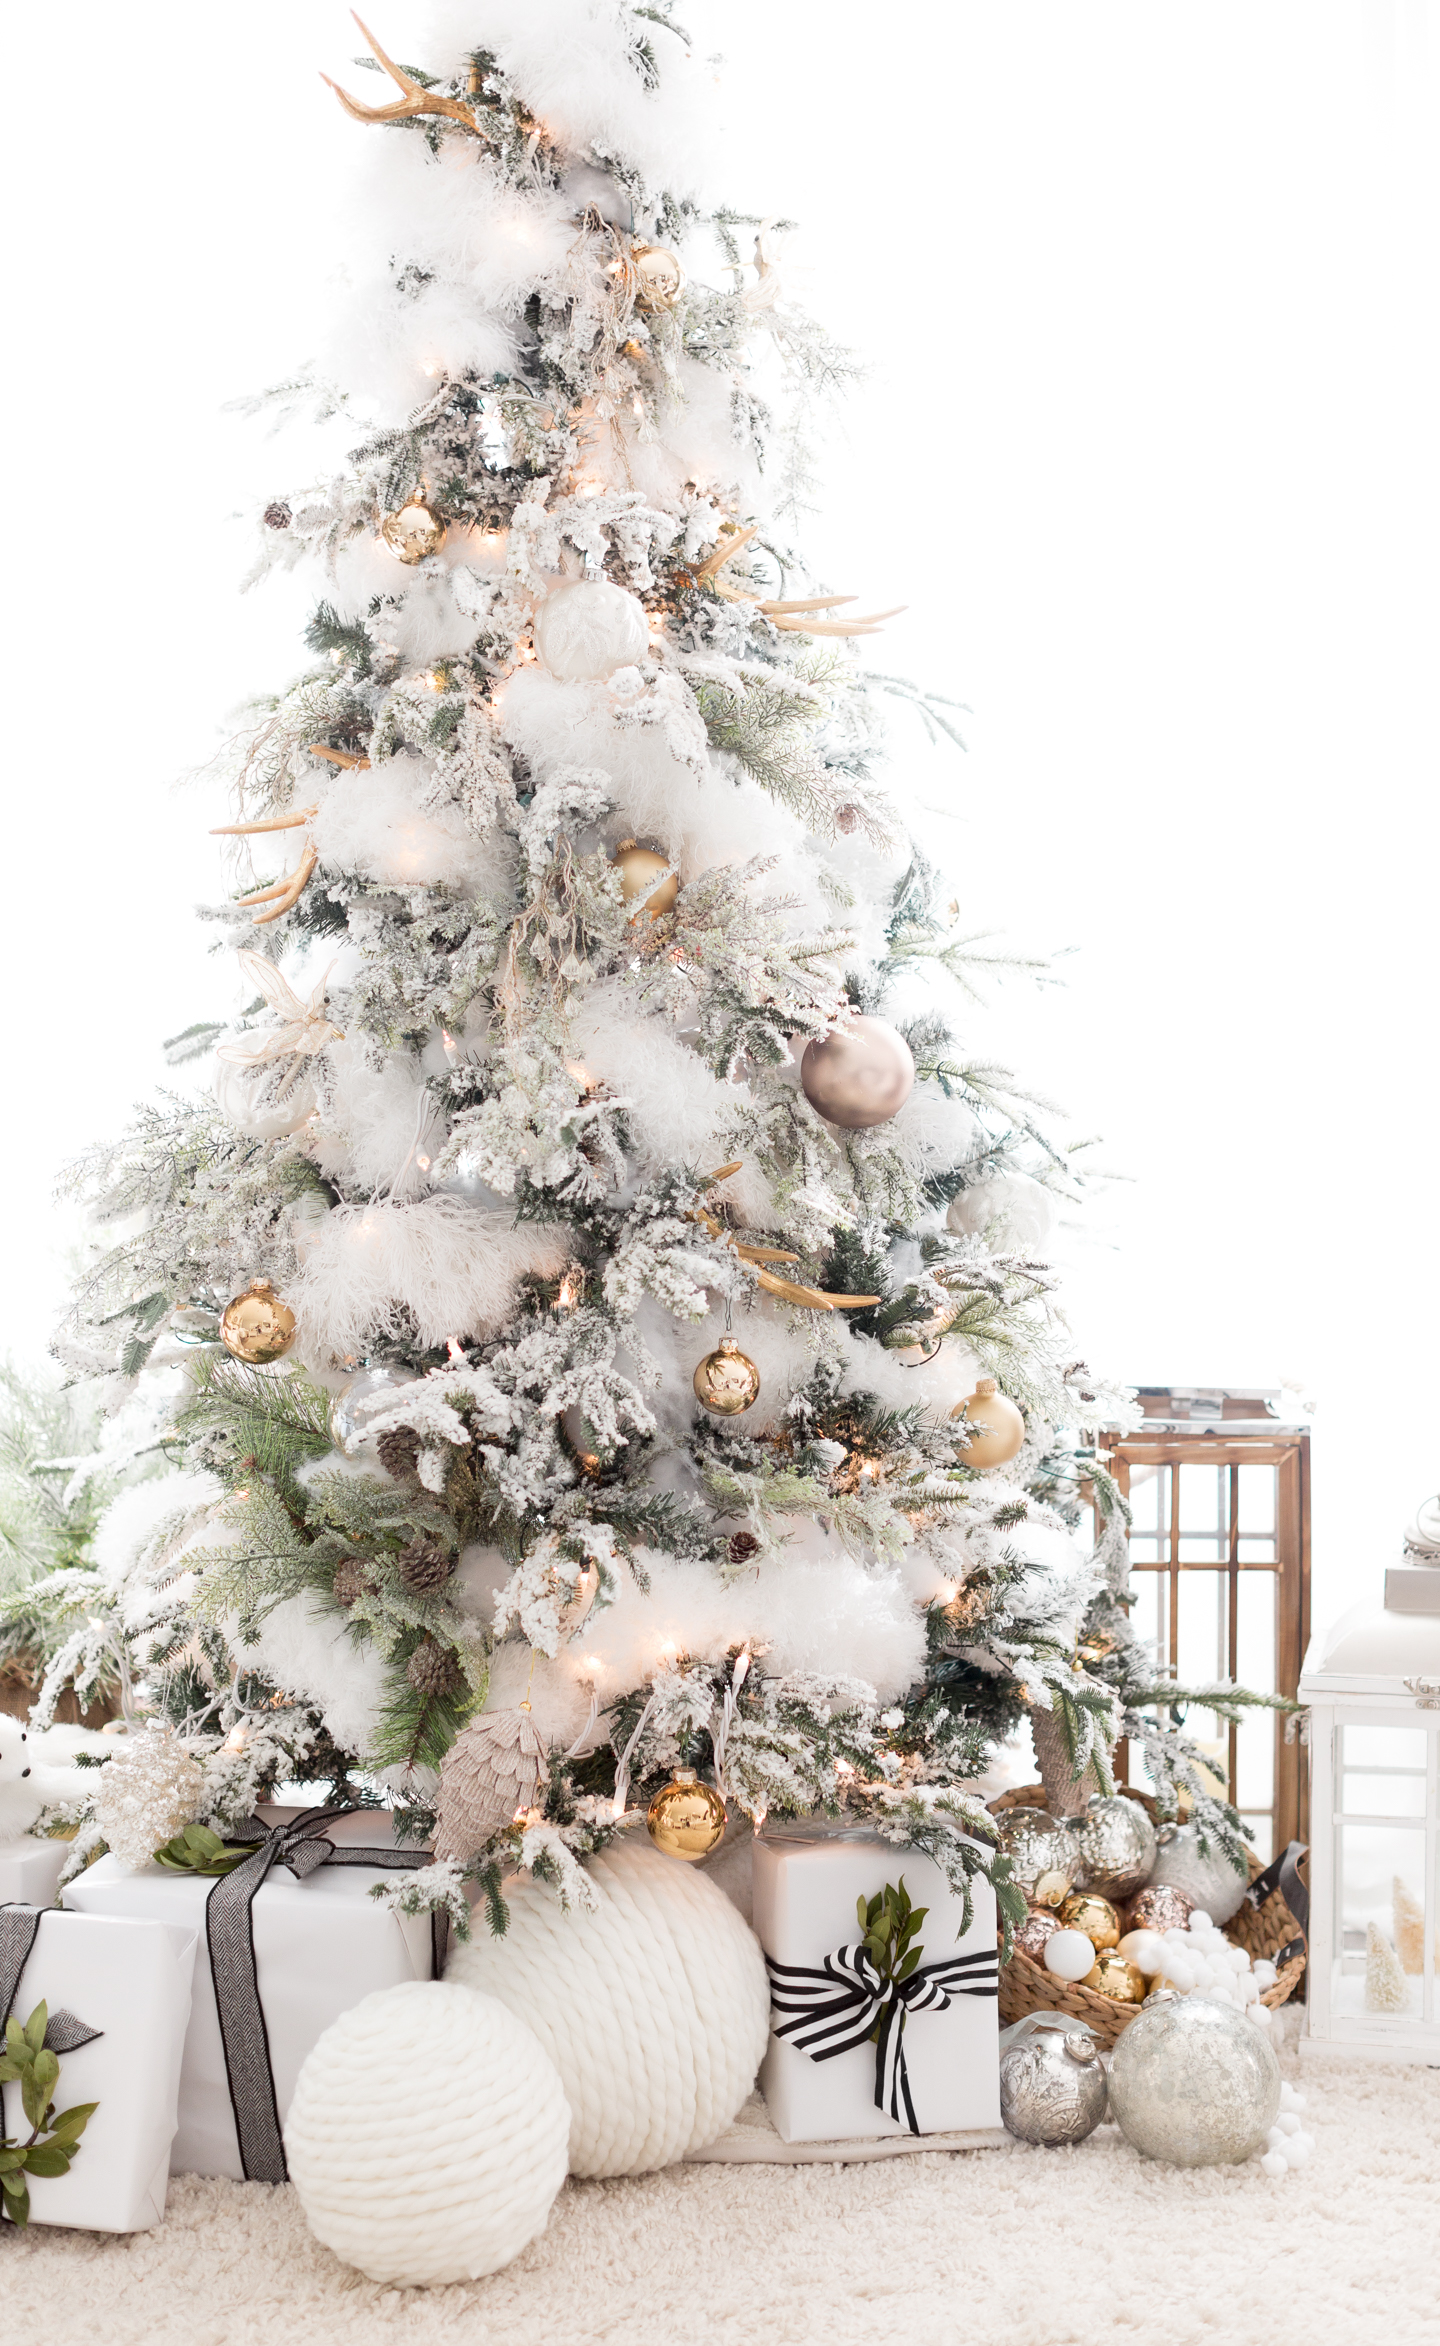 White Christmas Tree: 10 Inspiring Ideas how to decorate your tree for Christmas